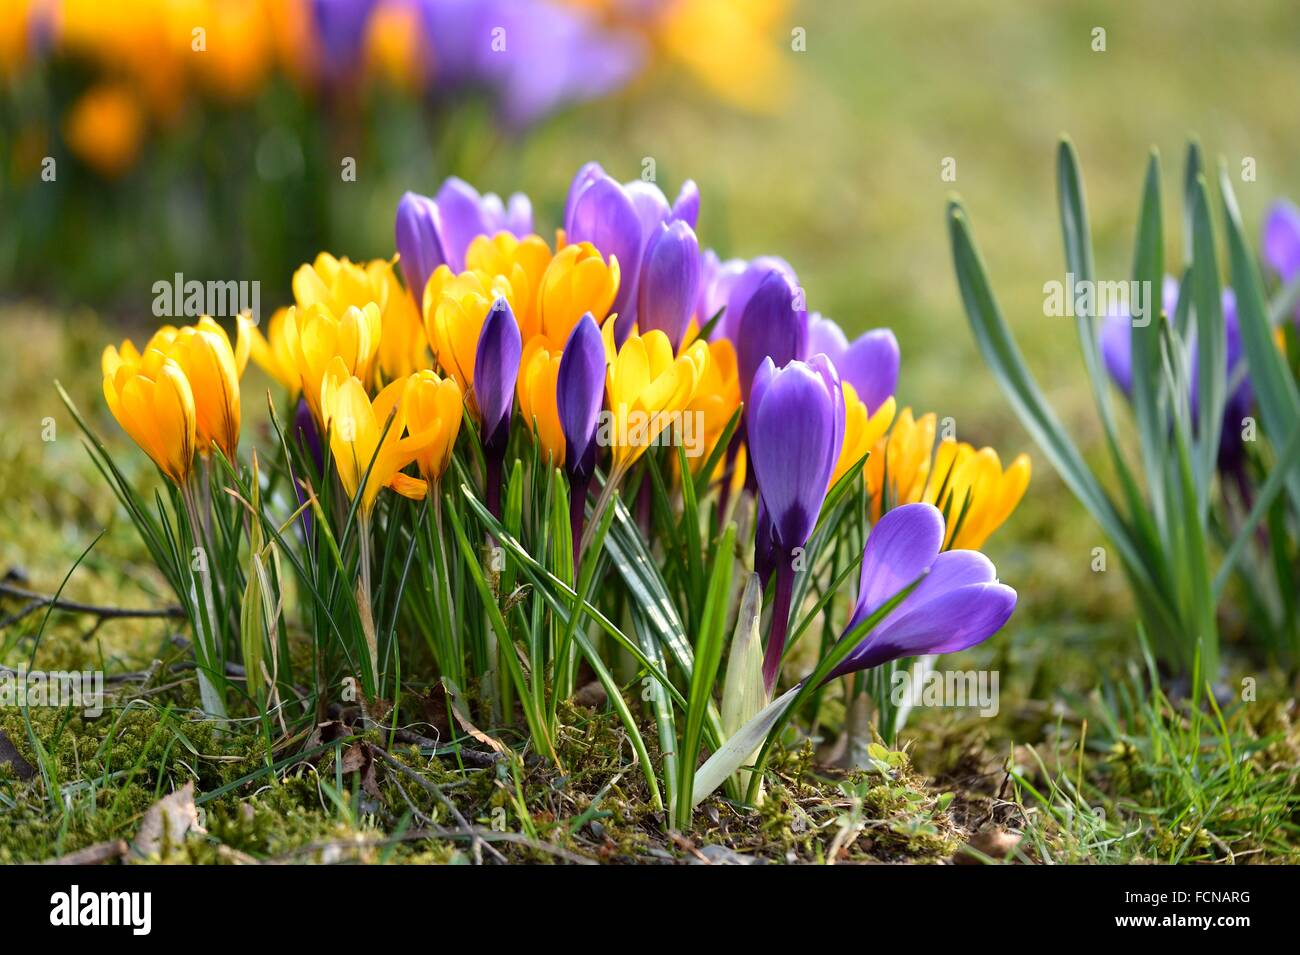 Spring Crocus or Giant Crocus (Crocus cultivars) flowering colourful in spring. - Stock Image